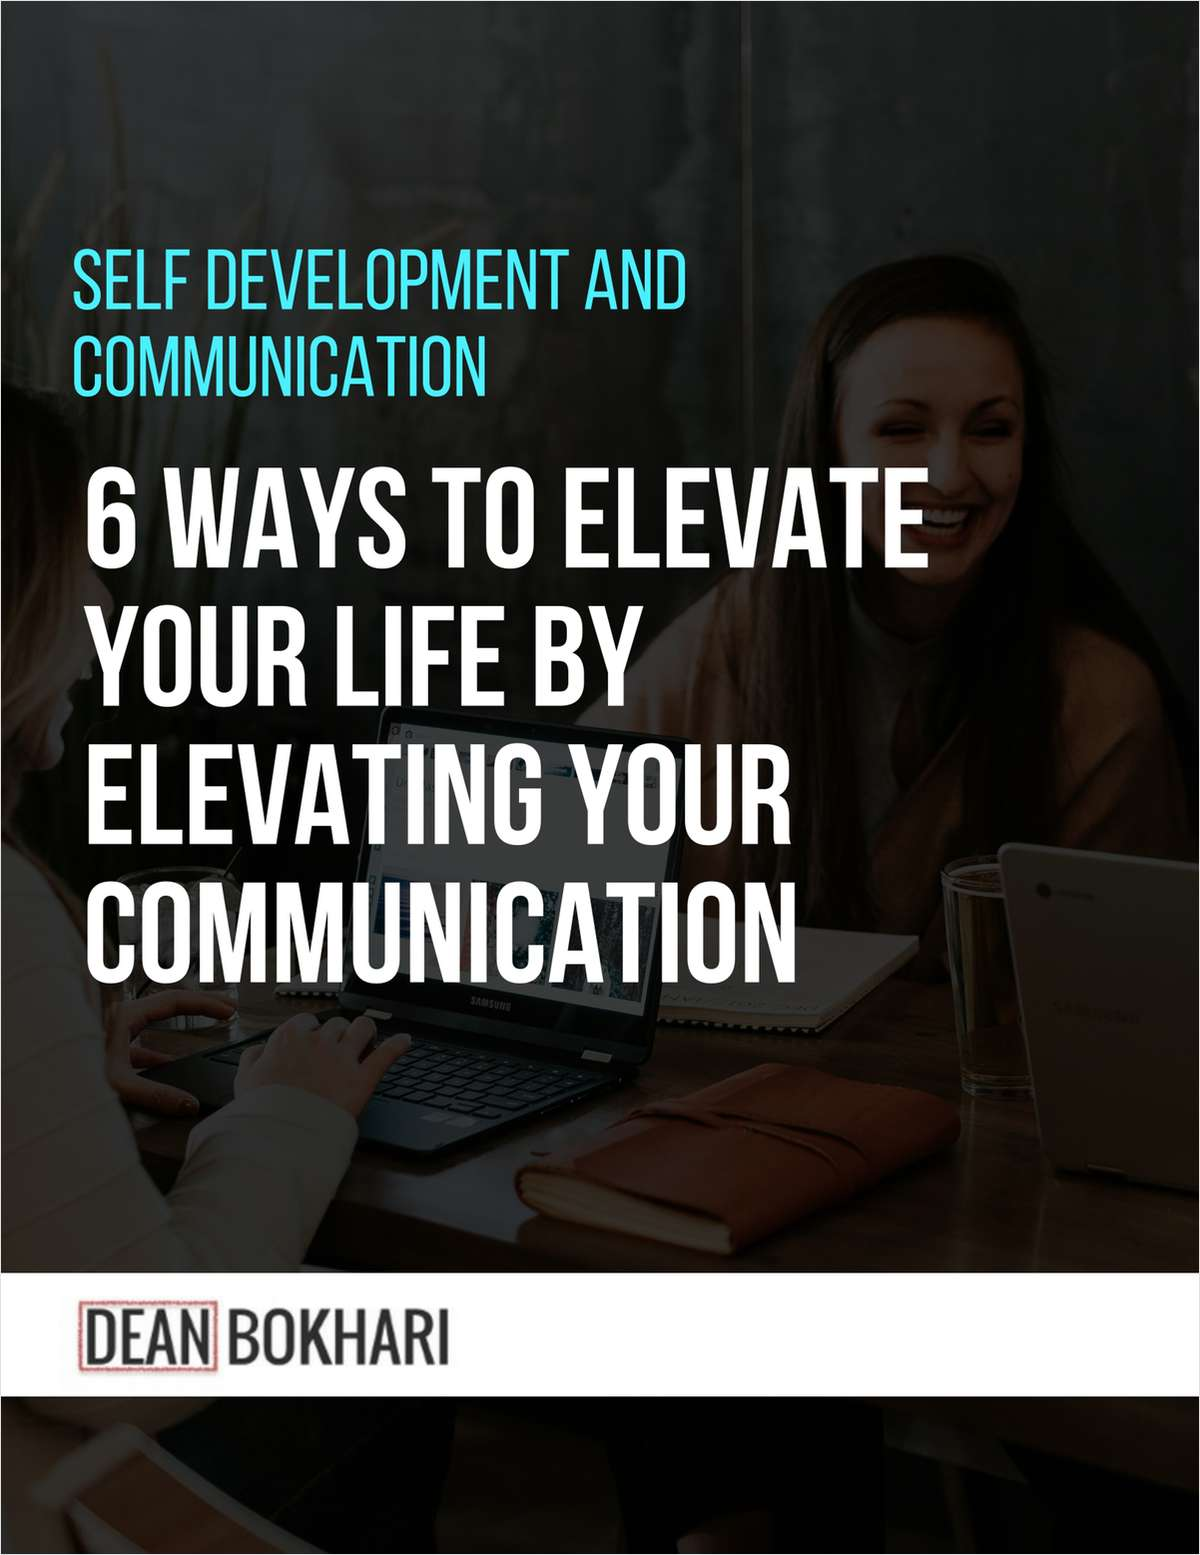 Self Development and Communication - 6 Ways to Elevate Your Life by Elevating Your Communication